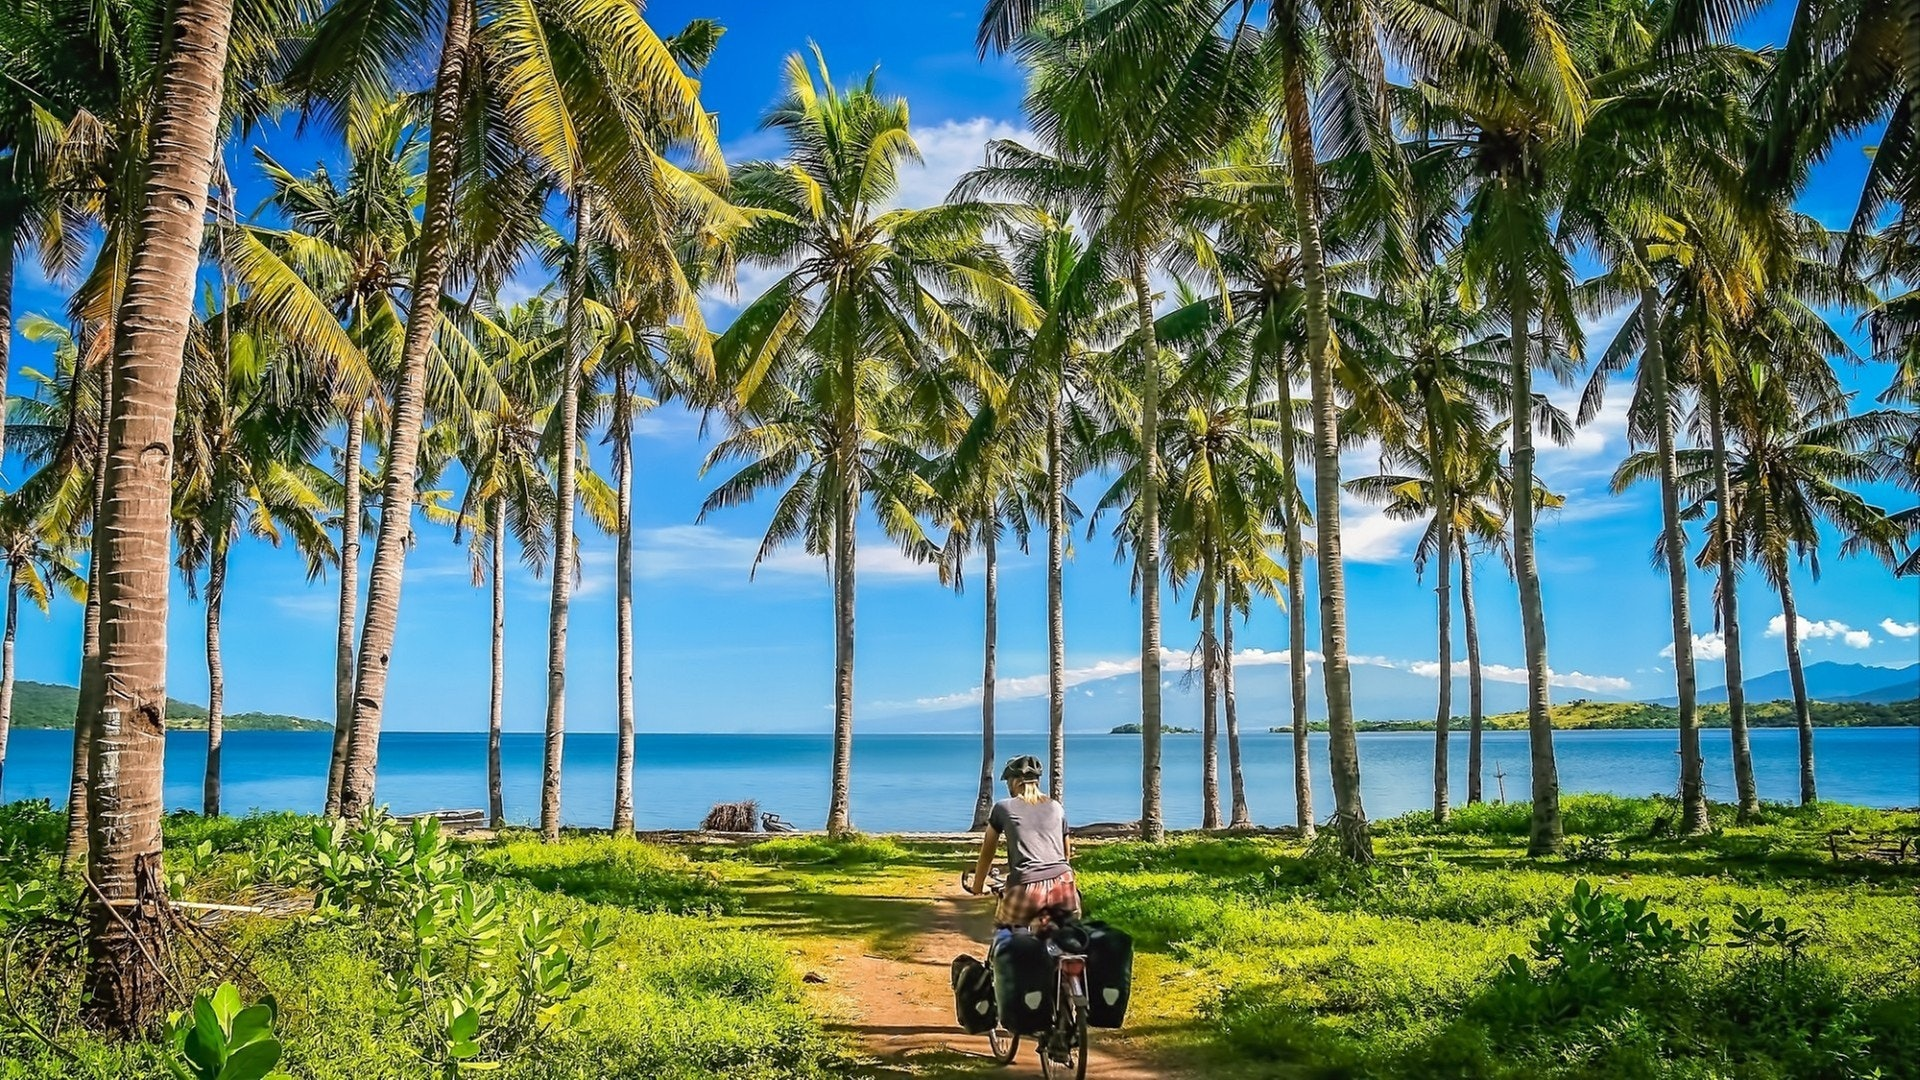 Lonely cyclist traveling through indonesian jungle in Sumbawa island in Indonesia in Asia